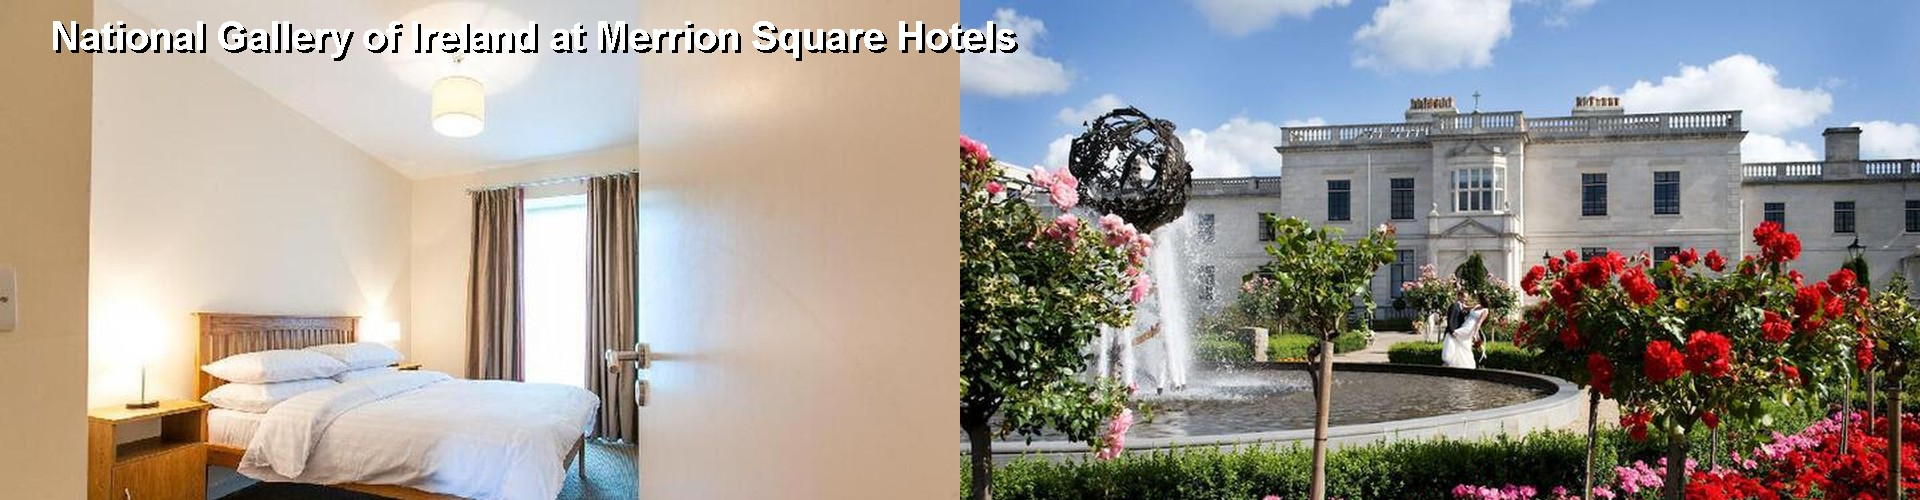 5 Best Hotels near National Gallery of Ireland at Merrion Square